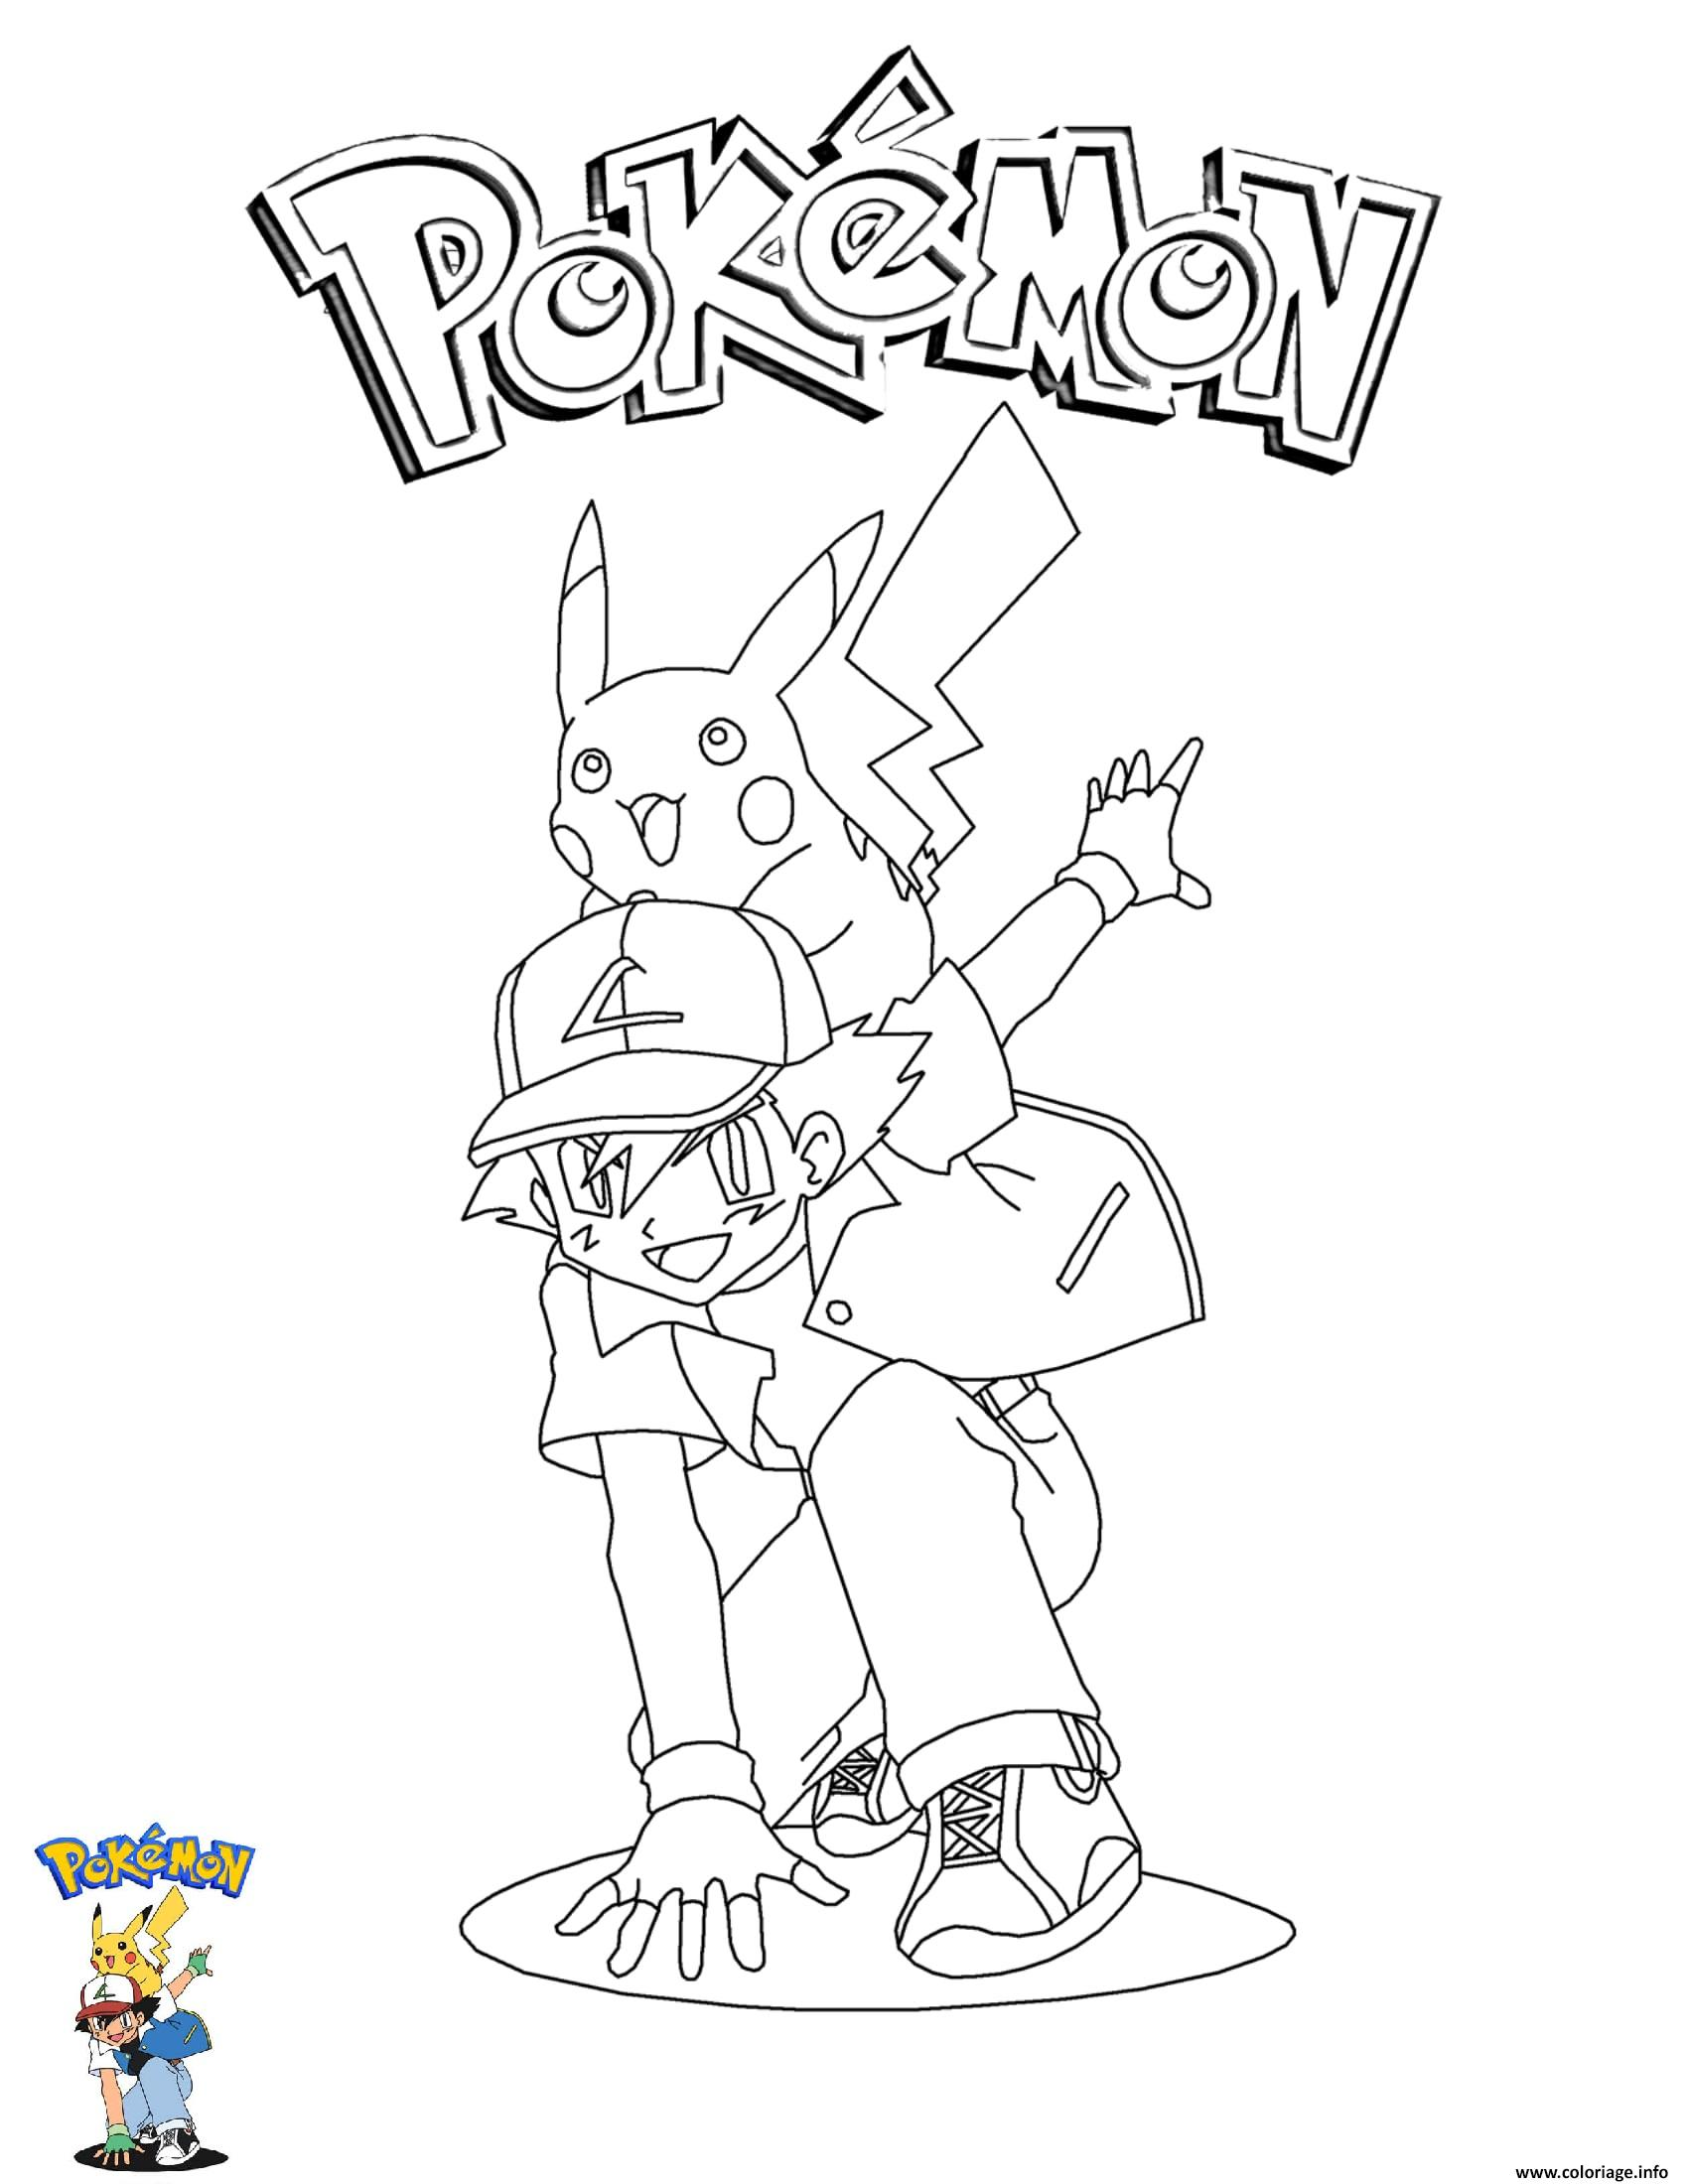 Dessin Ash and Pikachu Pokemon Coloriage Gratuit à Imprimer